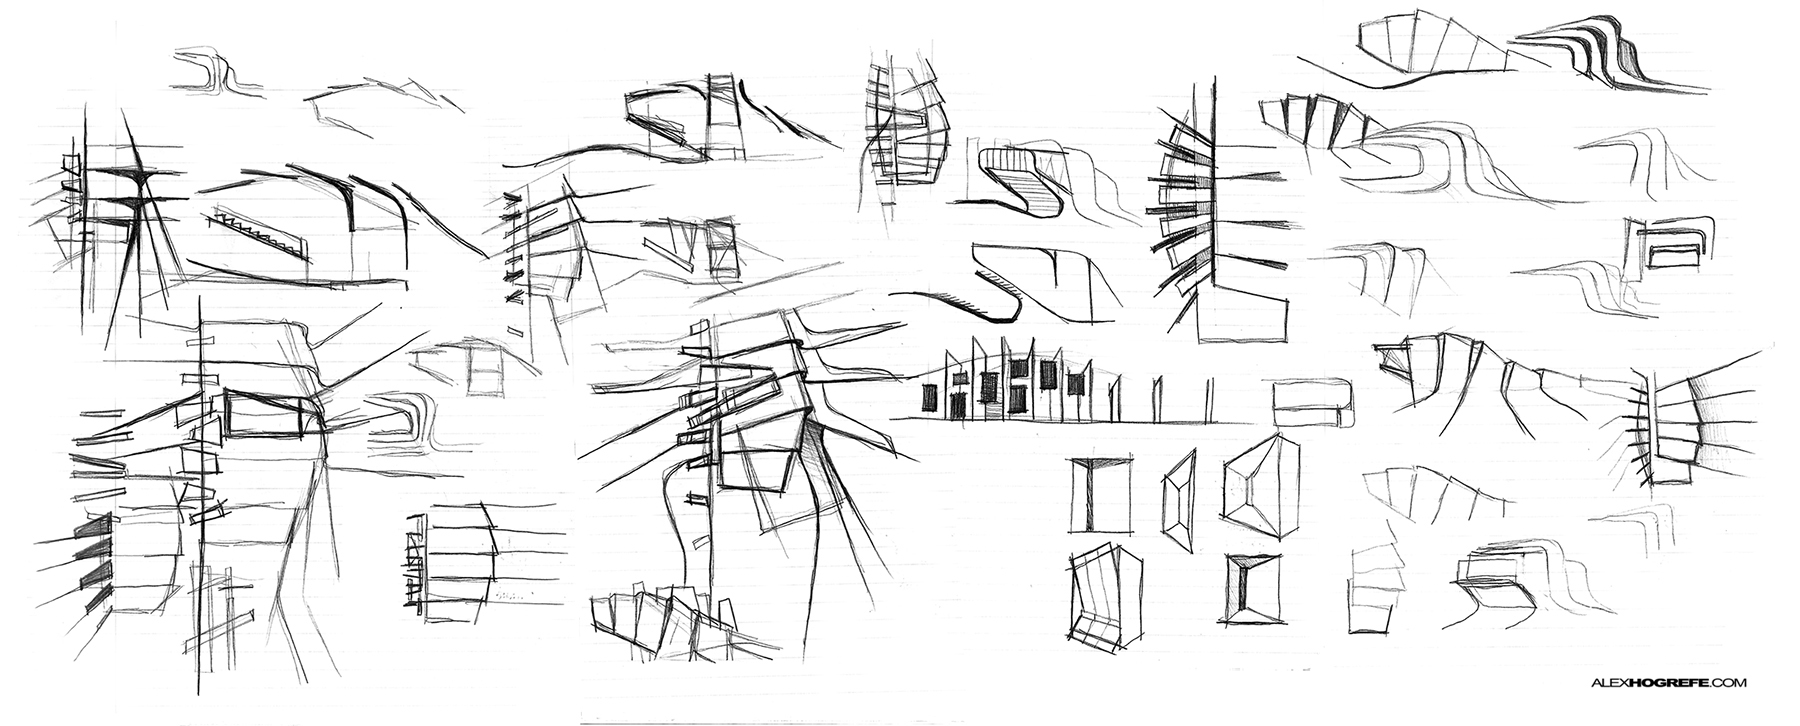 Theather_architecture_sketches_alex_hogrefe